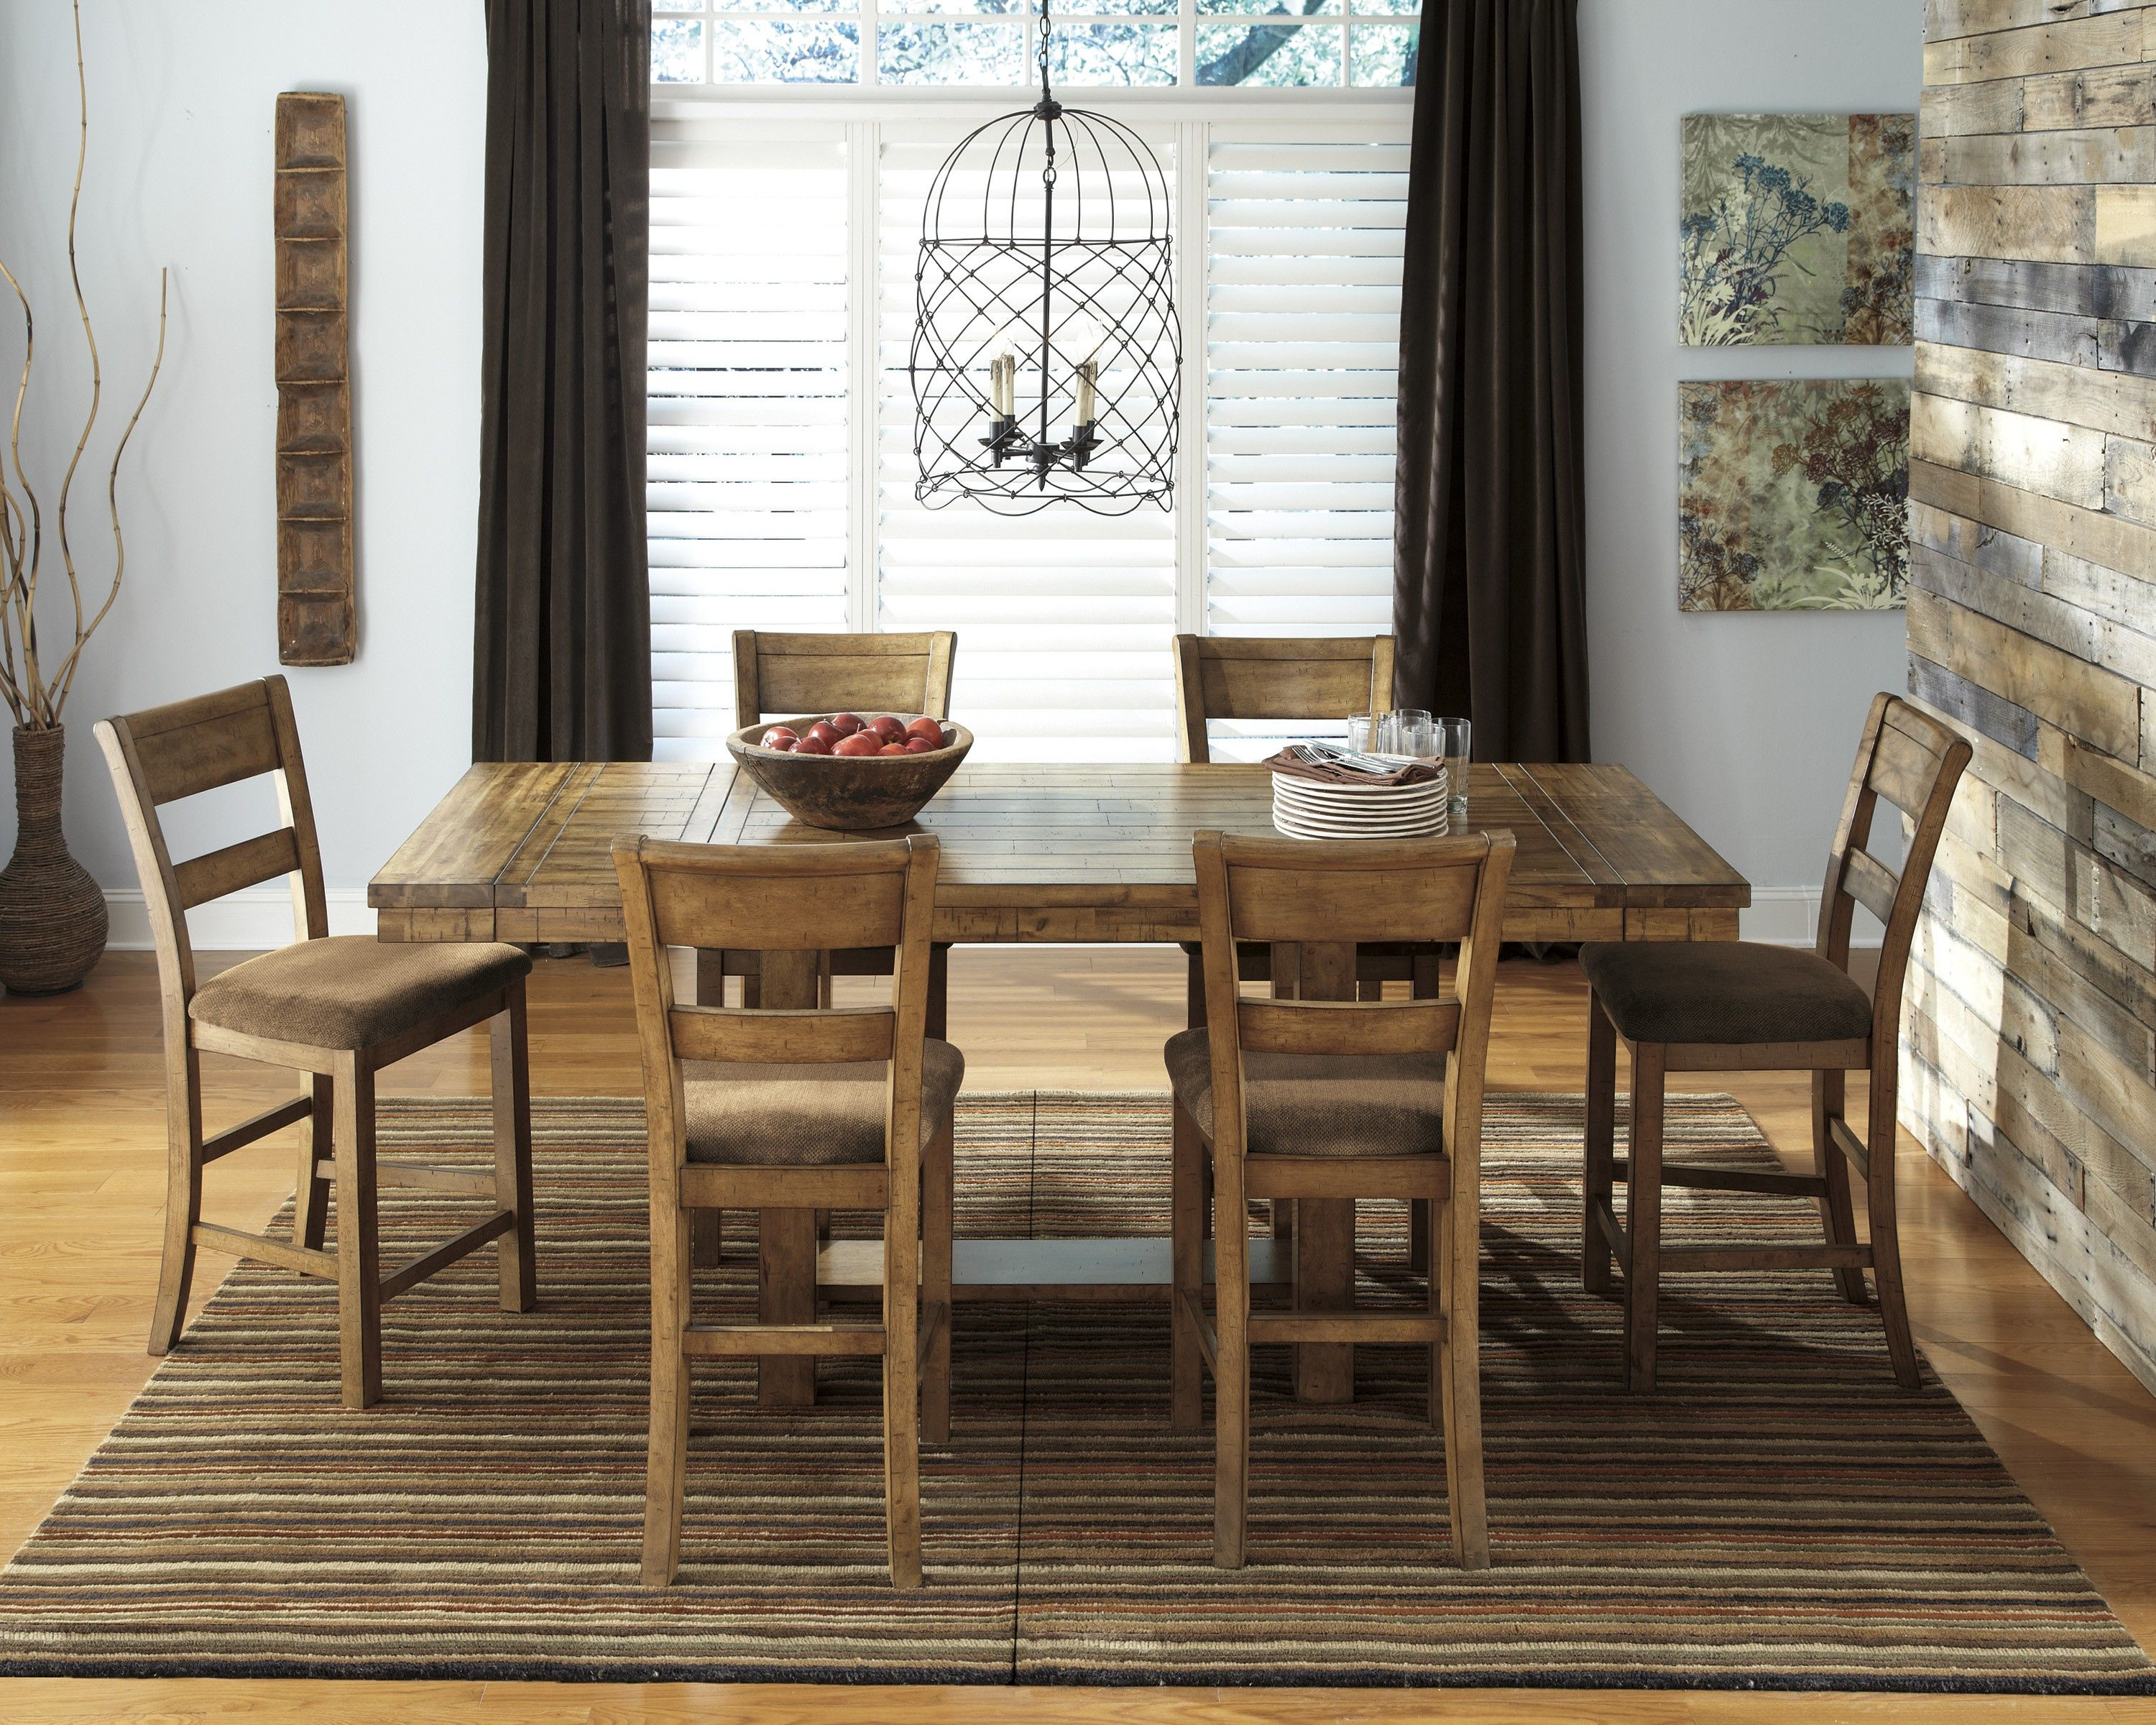 Casual Dining Room Furniture Sets  Modern Italian Furniture Check Pleasing Casual Dining Room Tables Design Inspiration